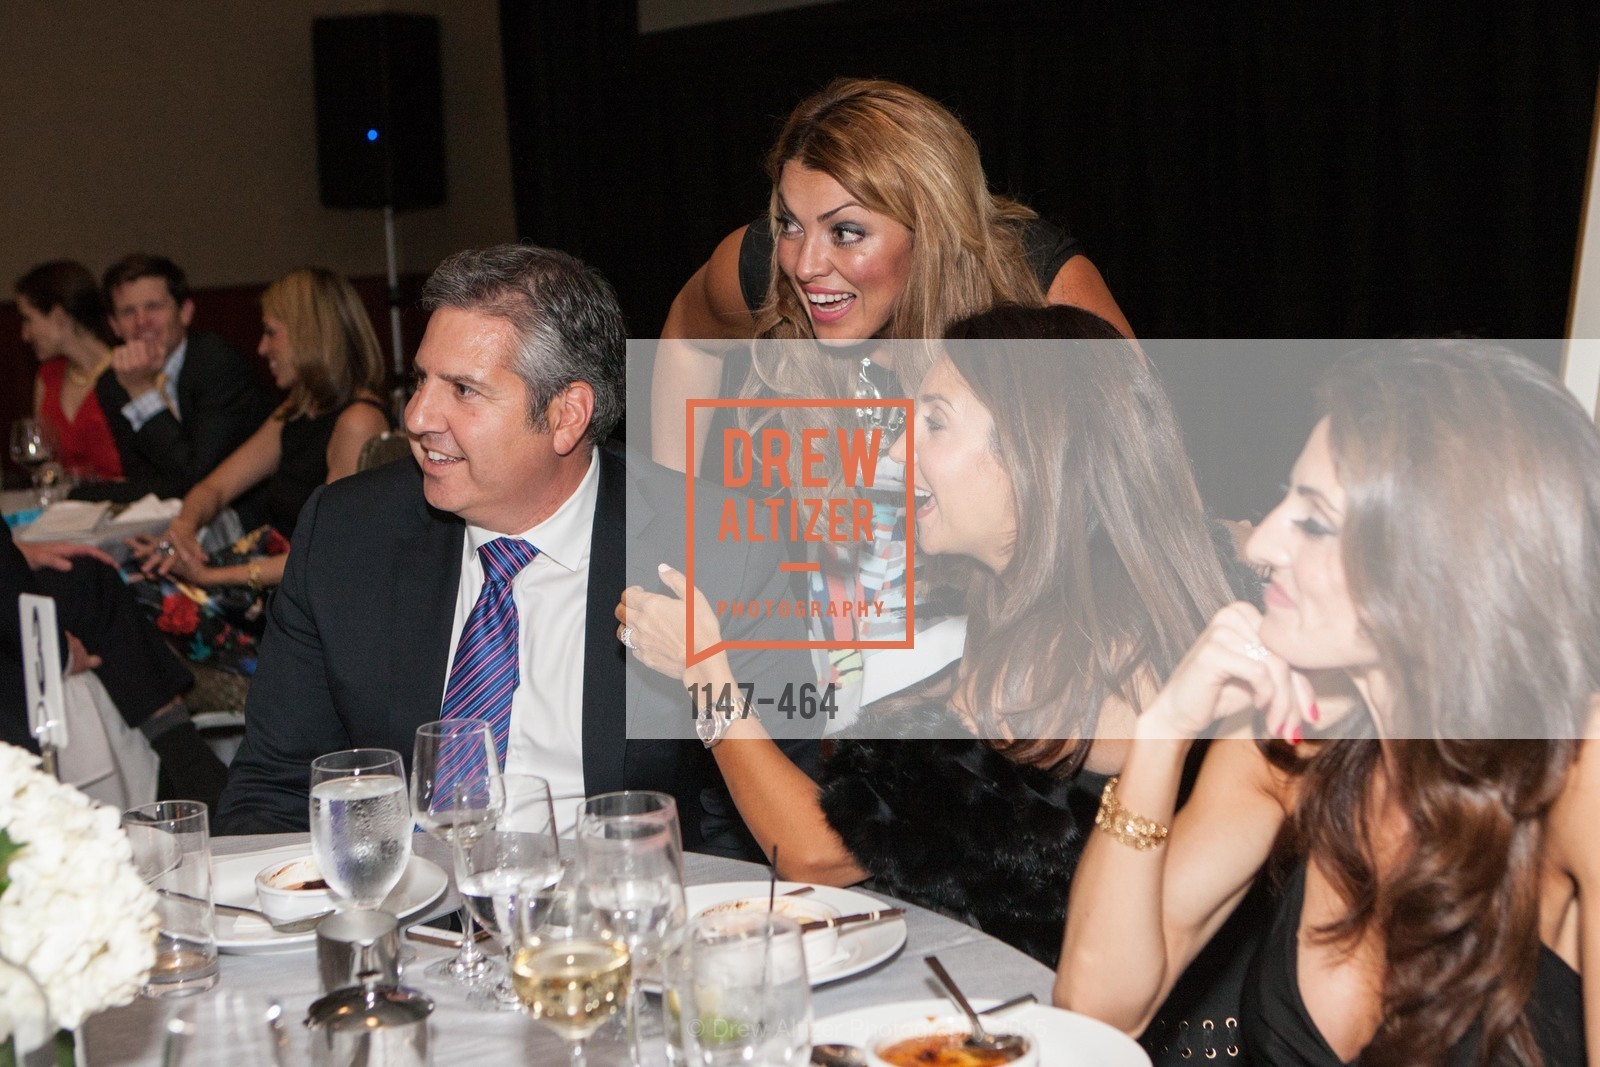 Claudia Karkia, Operation Smile Presents THE SAN FRANCISCO 2015 SMILE GALA, InterContinental Hotel, November 7th, 2015,Drew Altizer, Drew Altizer Photography, full-service agency, private events, San Francisco photographer, photographer california